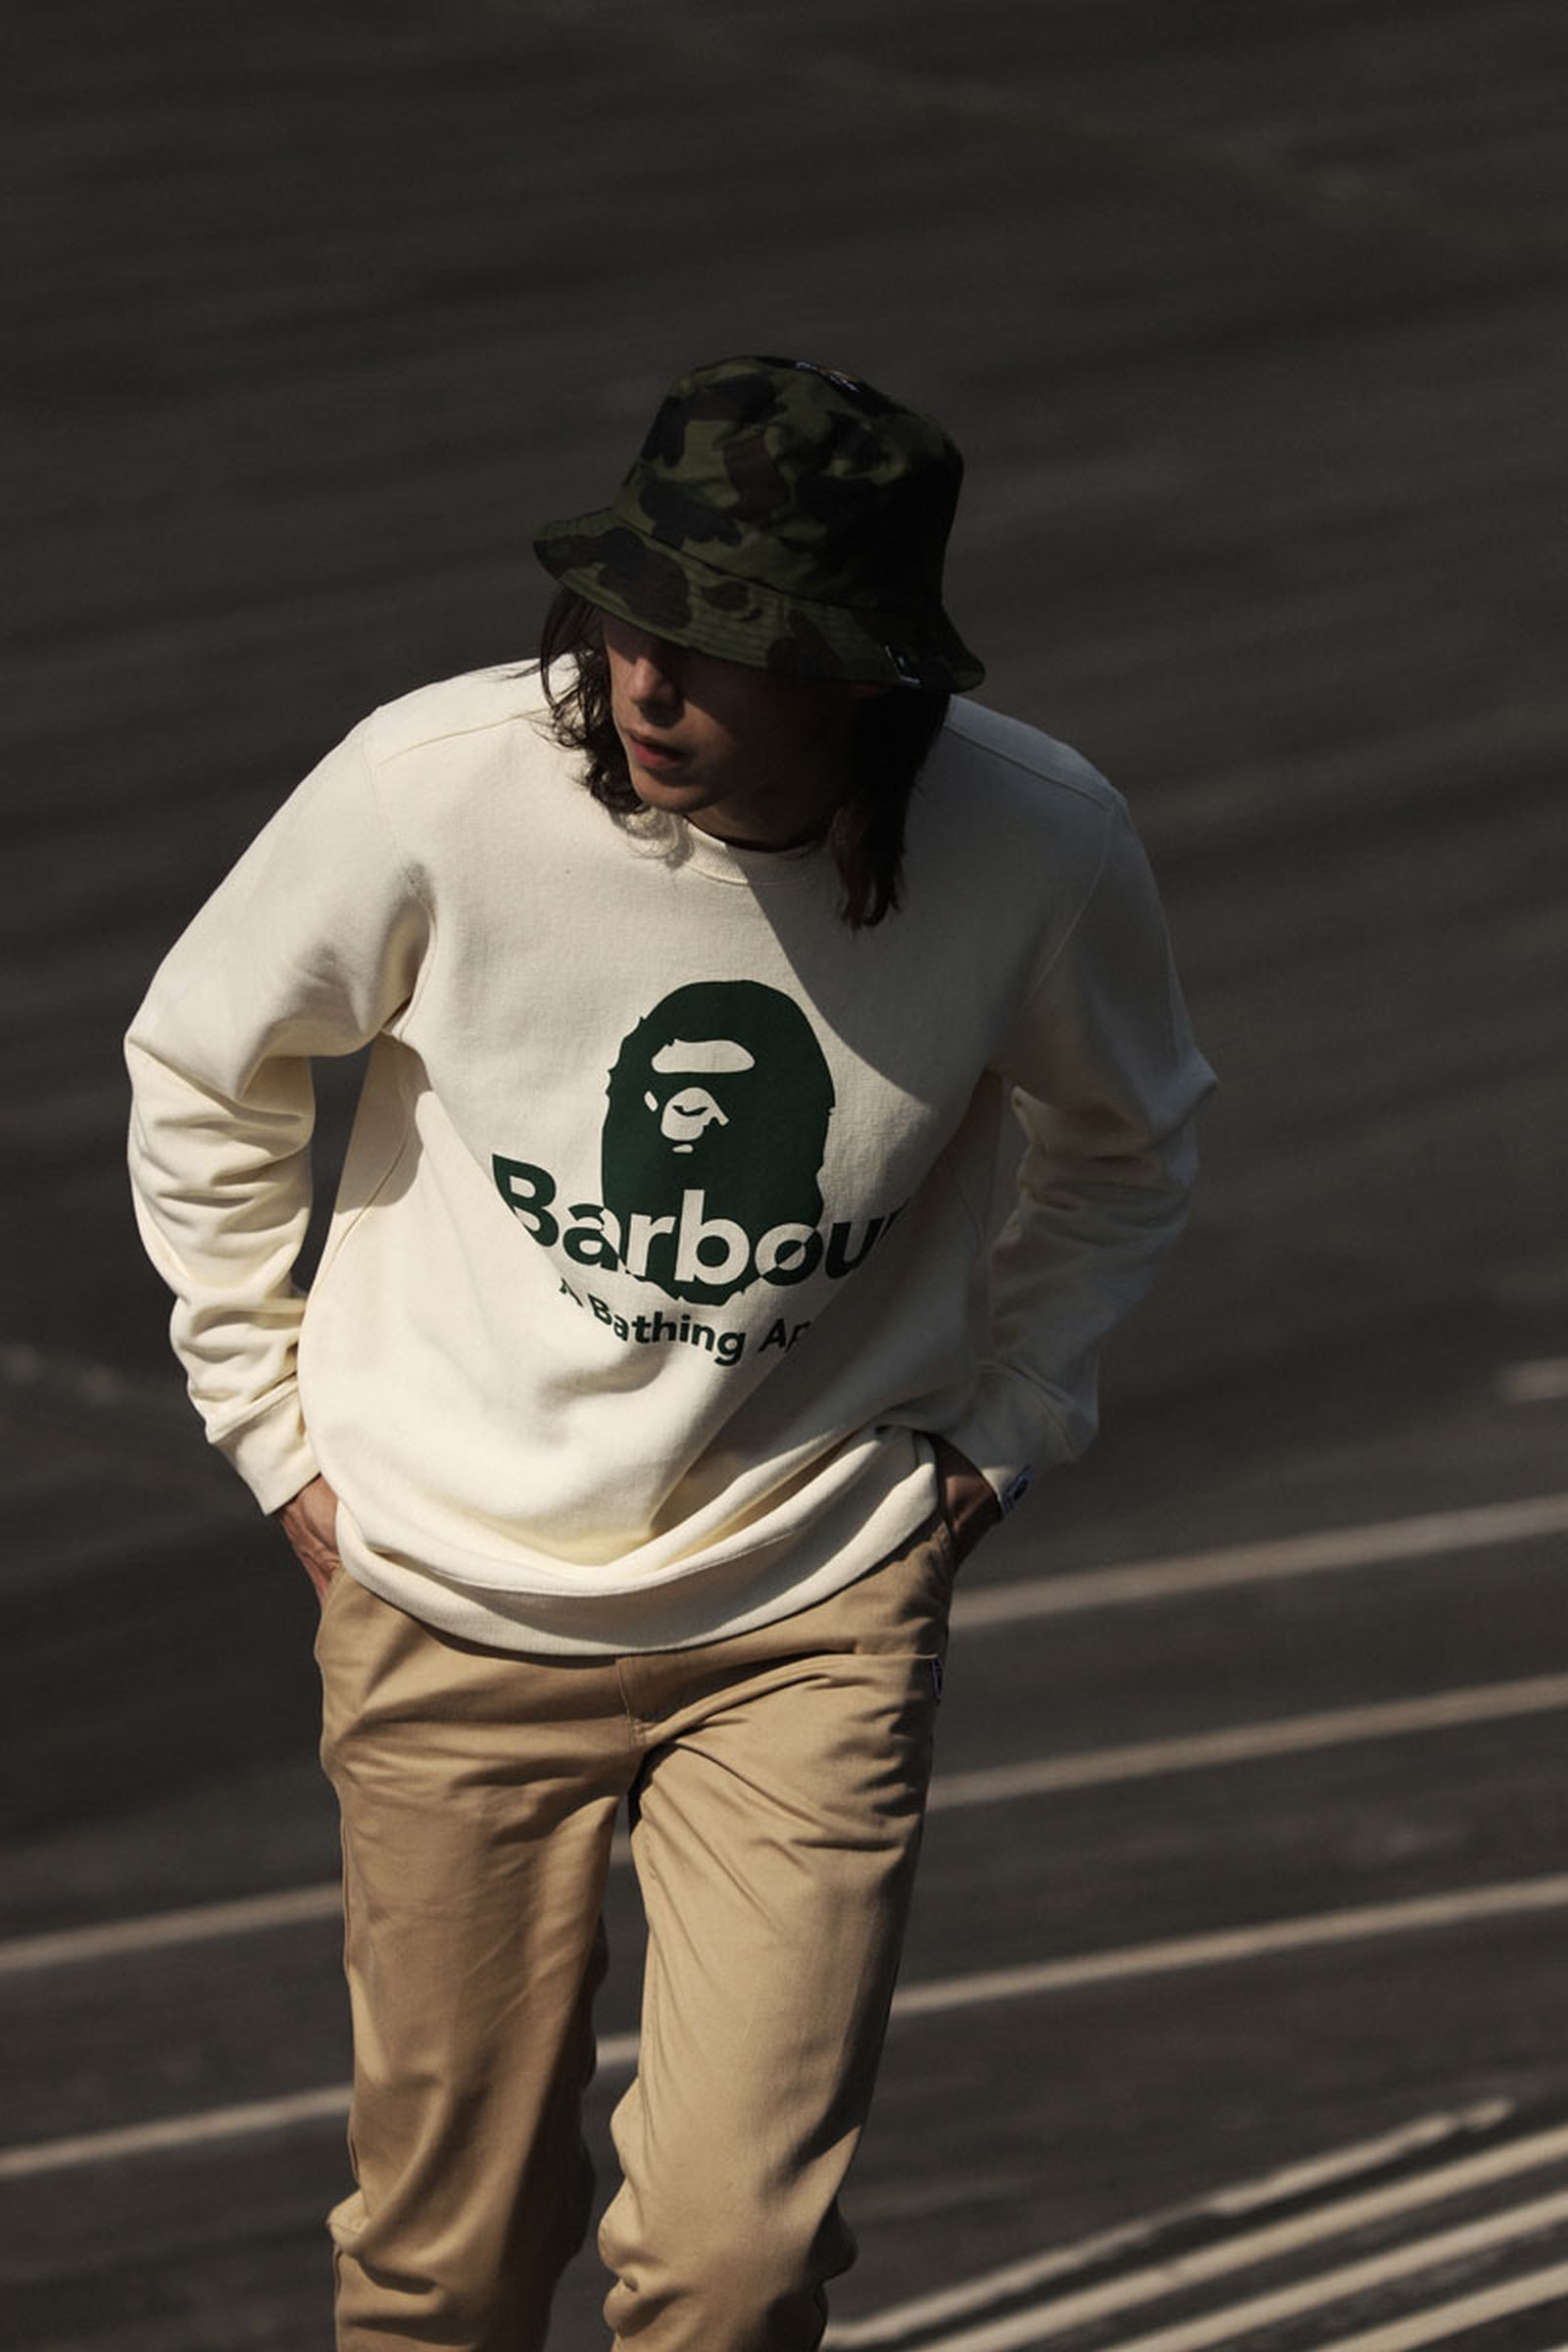 bape-barbour-collection-release-info-06